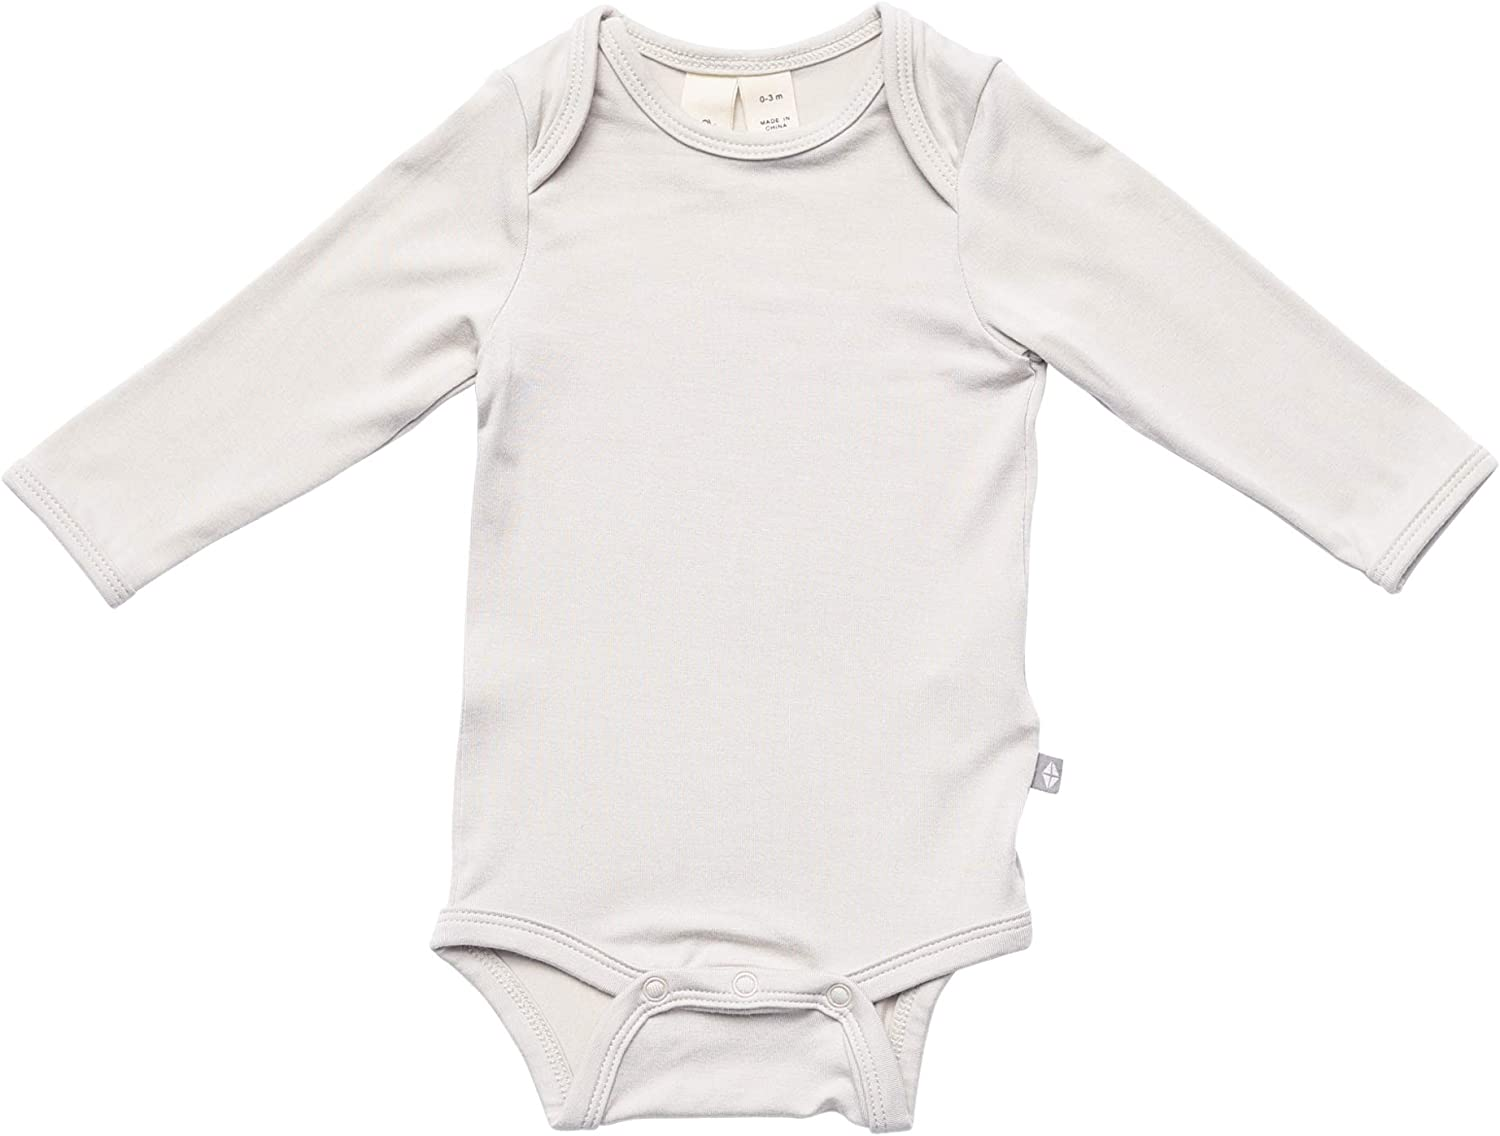 0-24 Months KYTE BABY Soft Bamboo Rayon Rompers Zipper Closure